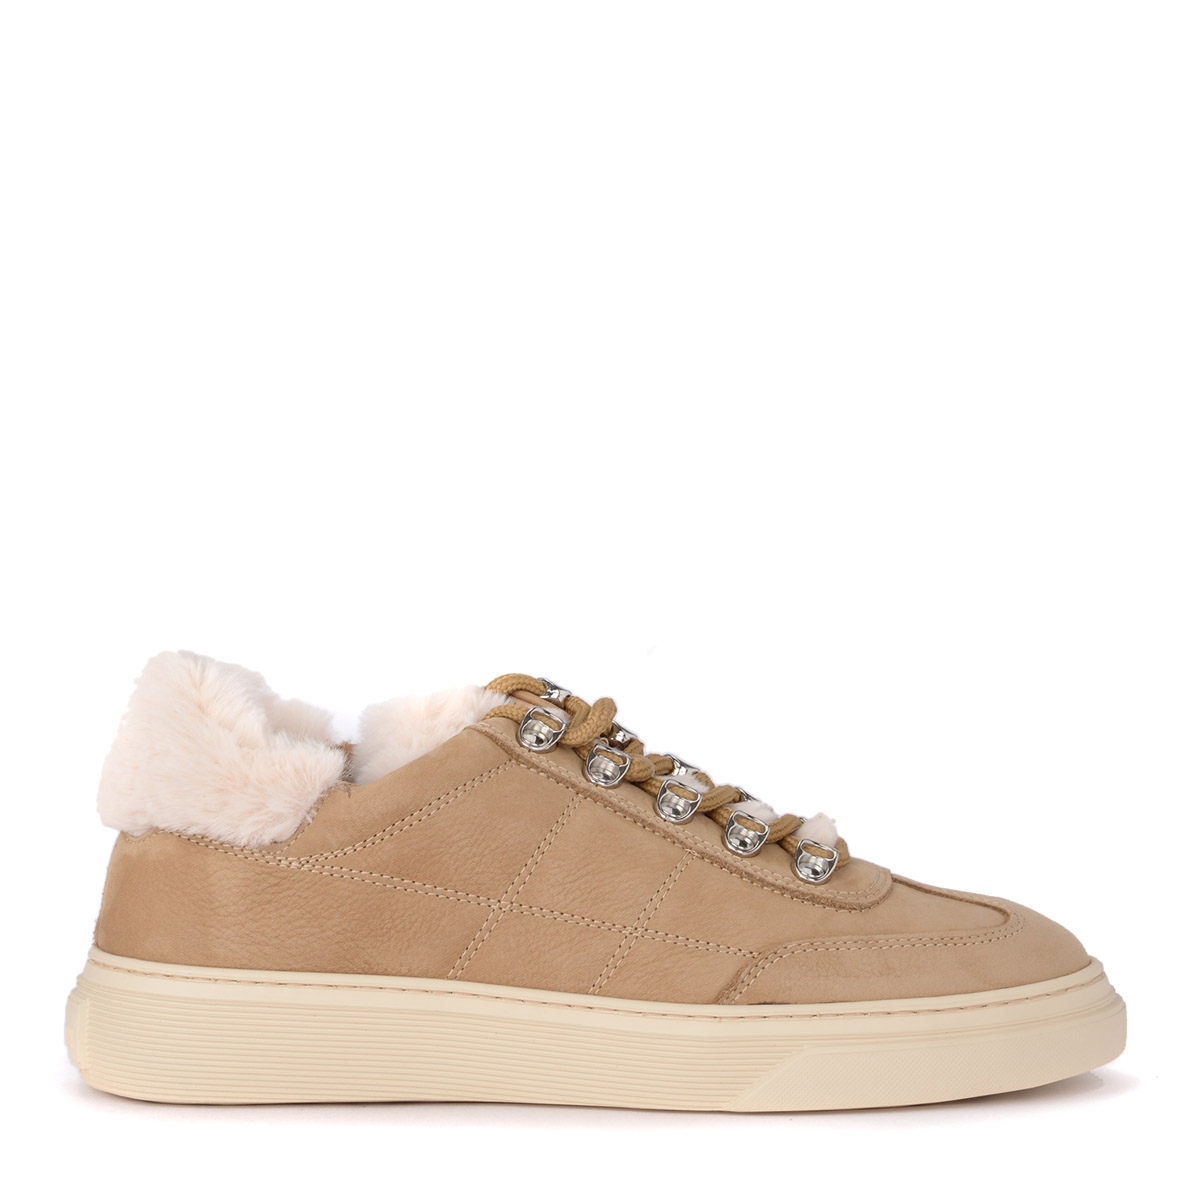 Sneaker HOGAN h365 in Nubuck Cookie and mutton